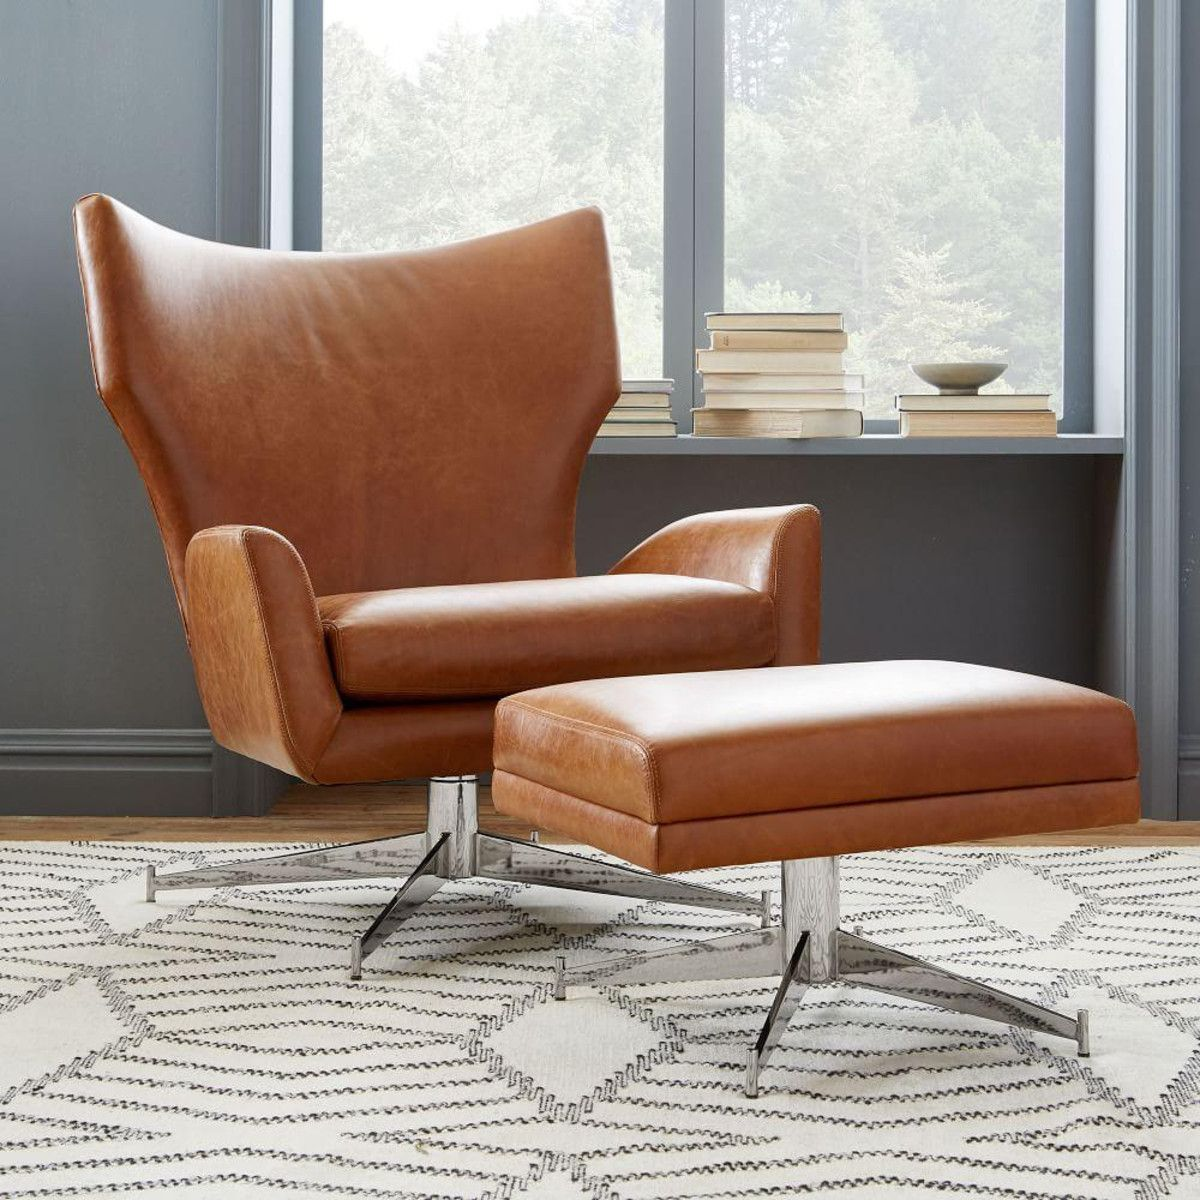 Hemming Leather Swivel Armchair in 2020 Best leather